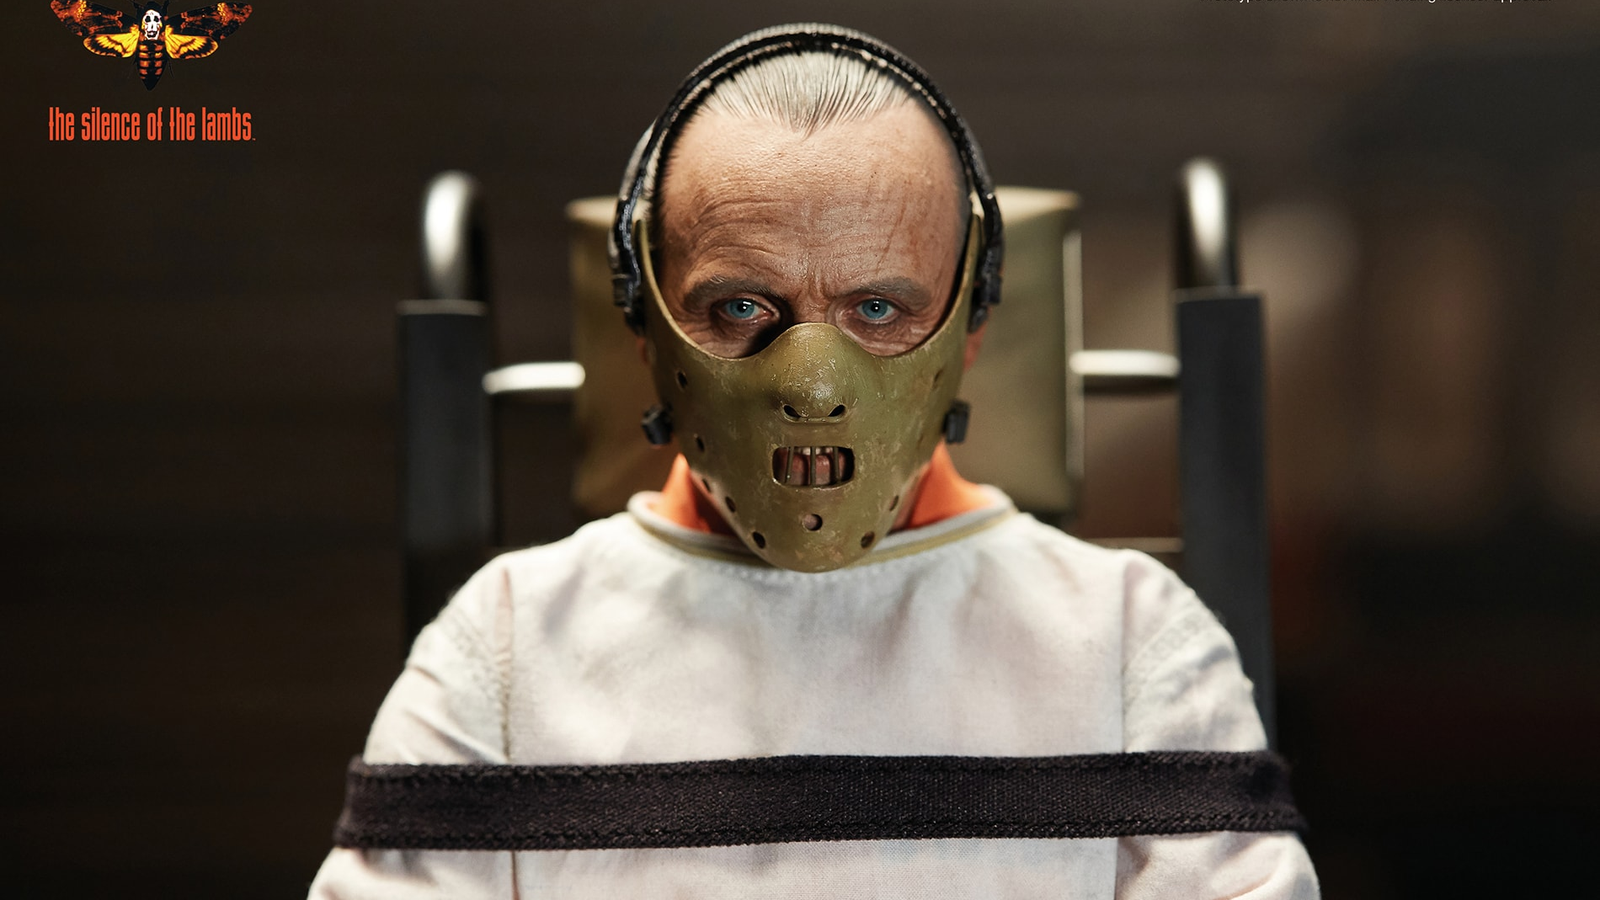 the silence of the lambs The silence of the lambs blu-ray truly is a masterpiece with perfect scores all around making it one of the best blu-ray's ever a psychopath nicknamed buffalo bill is murdering women across the.